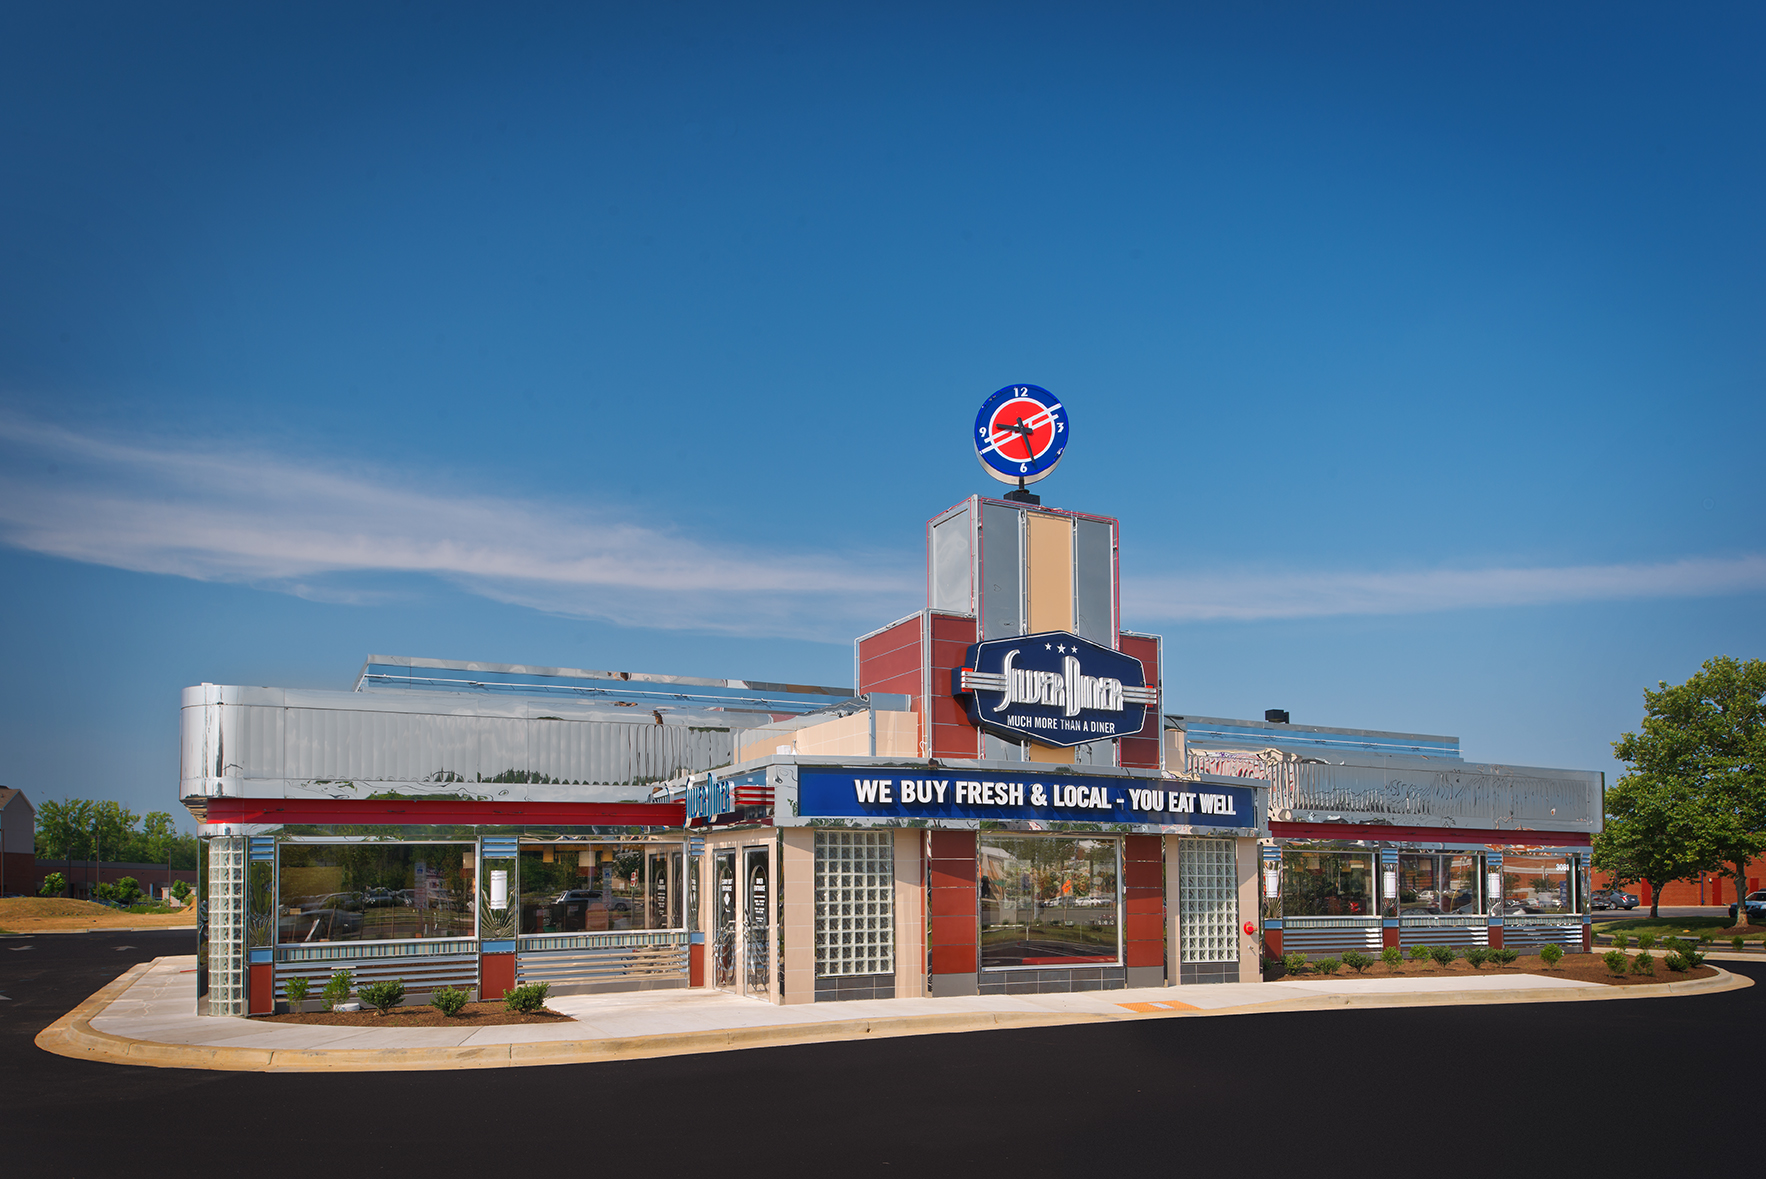 Silver Diner gets national attention from study on healthy kids' options